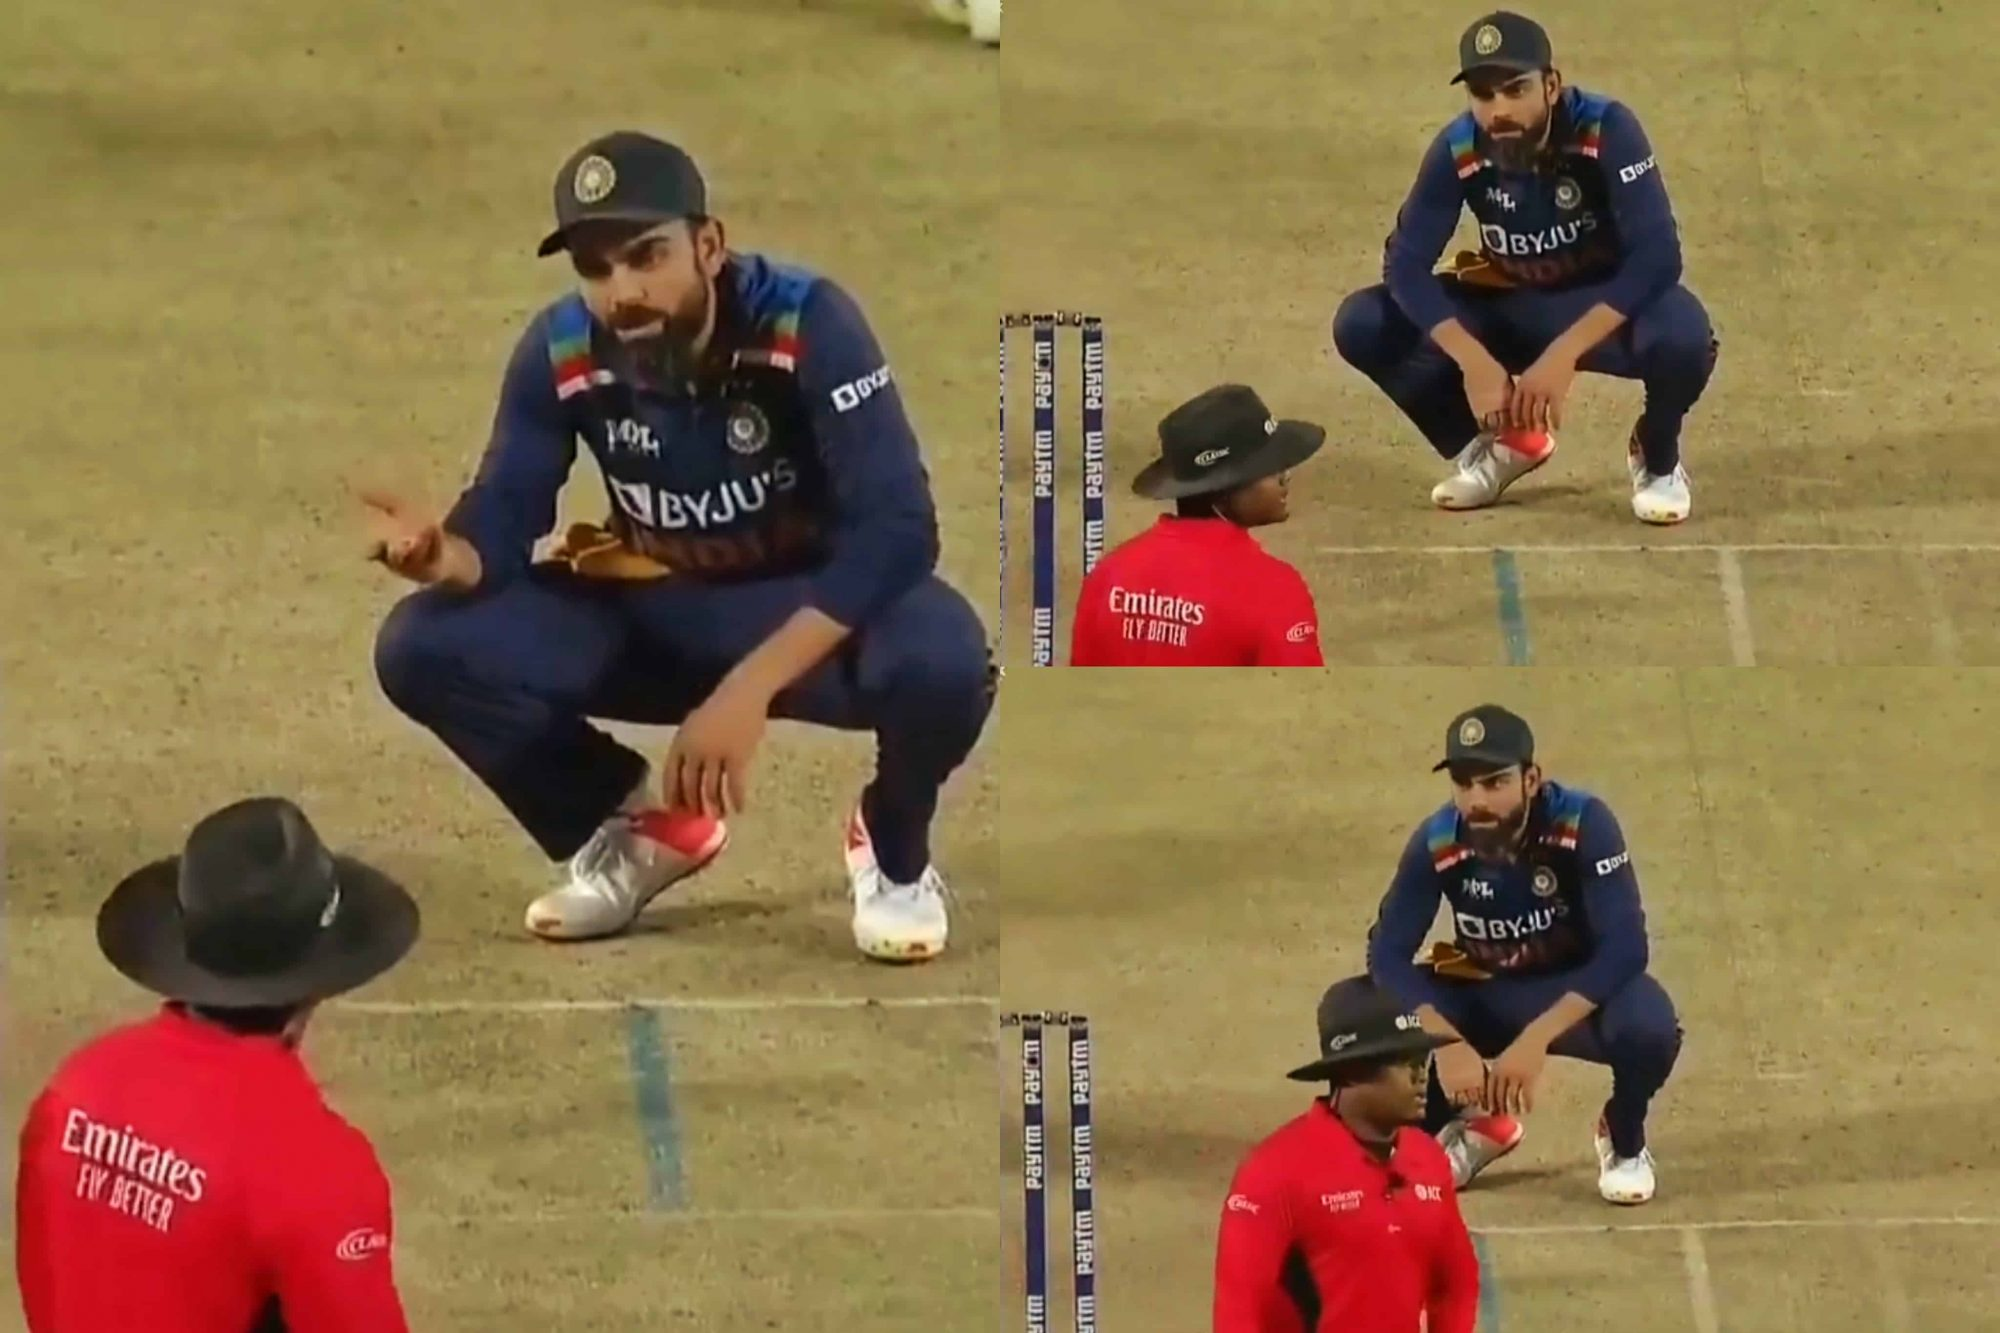 Watch: Virat Kohli Completely Ignored by Umpire As He Analyses a Wide-Ball Call During 2nd ODI Against England